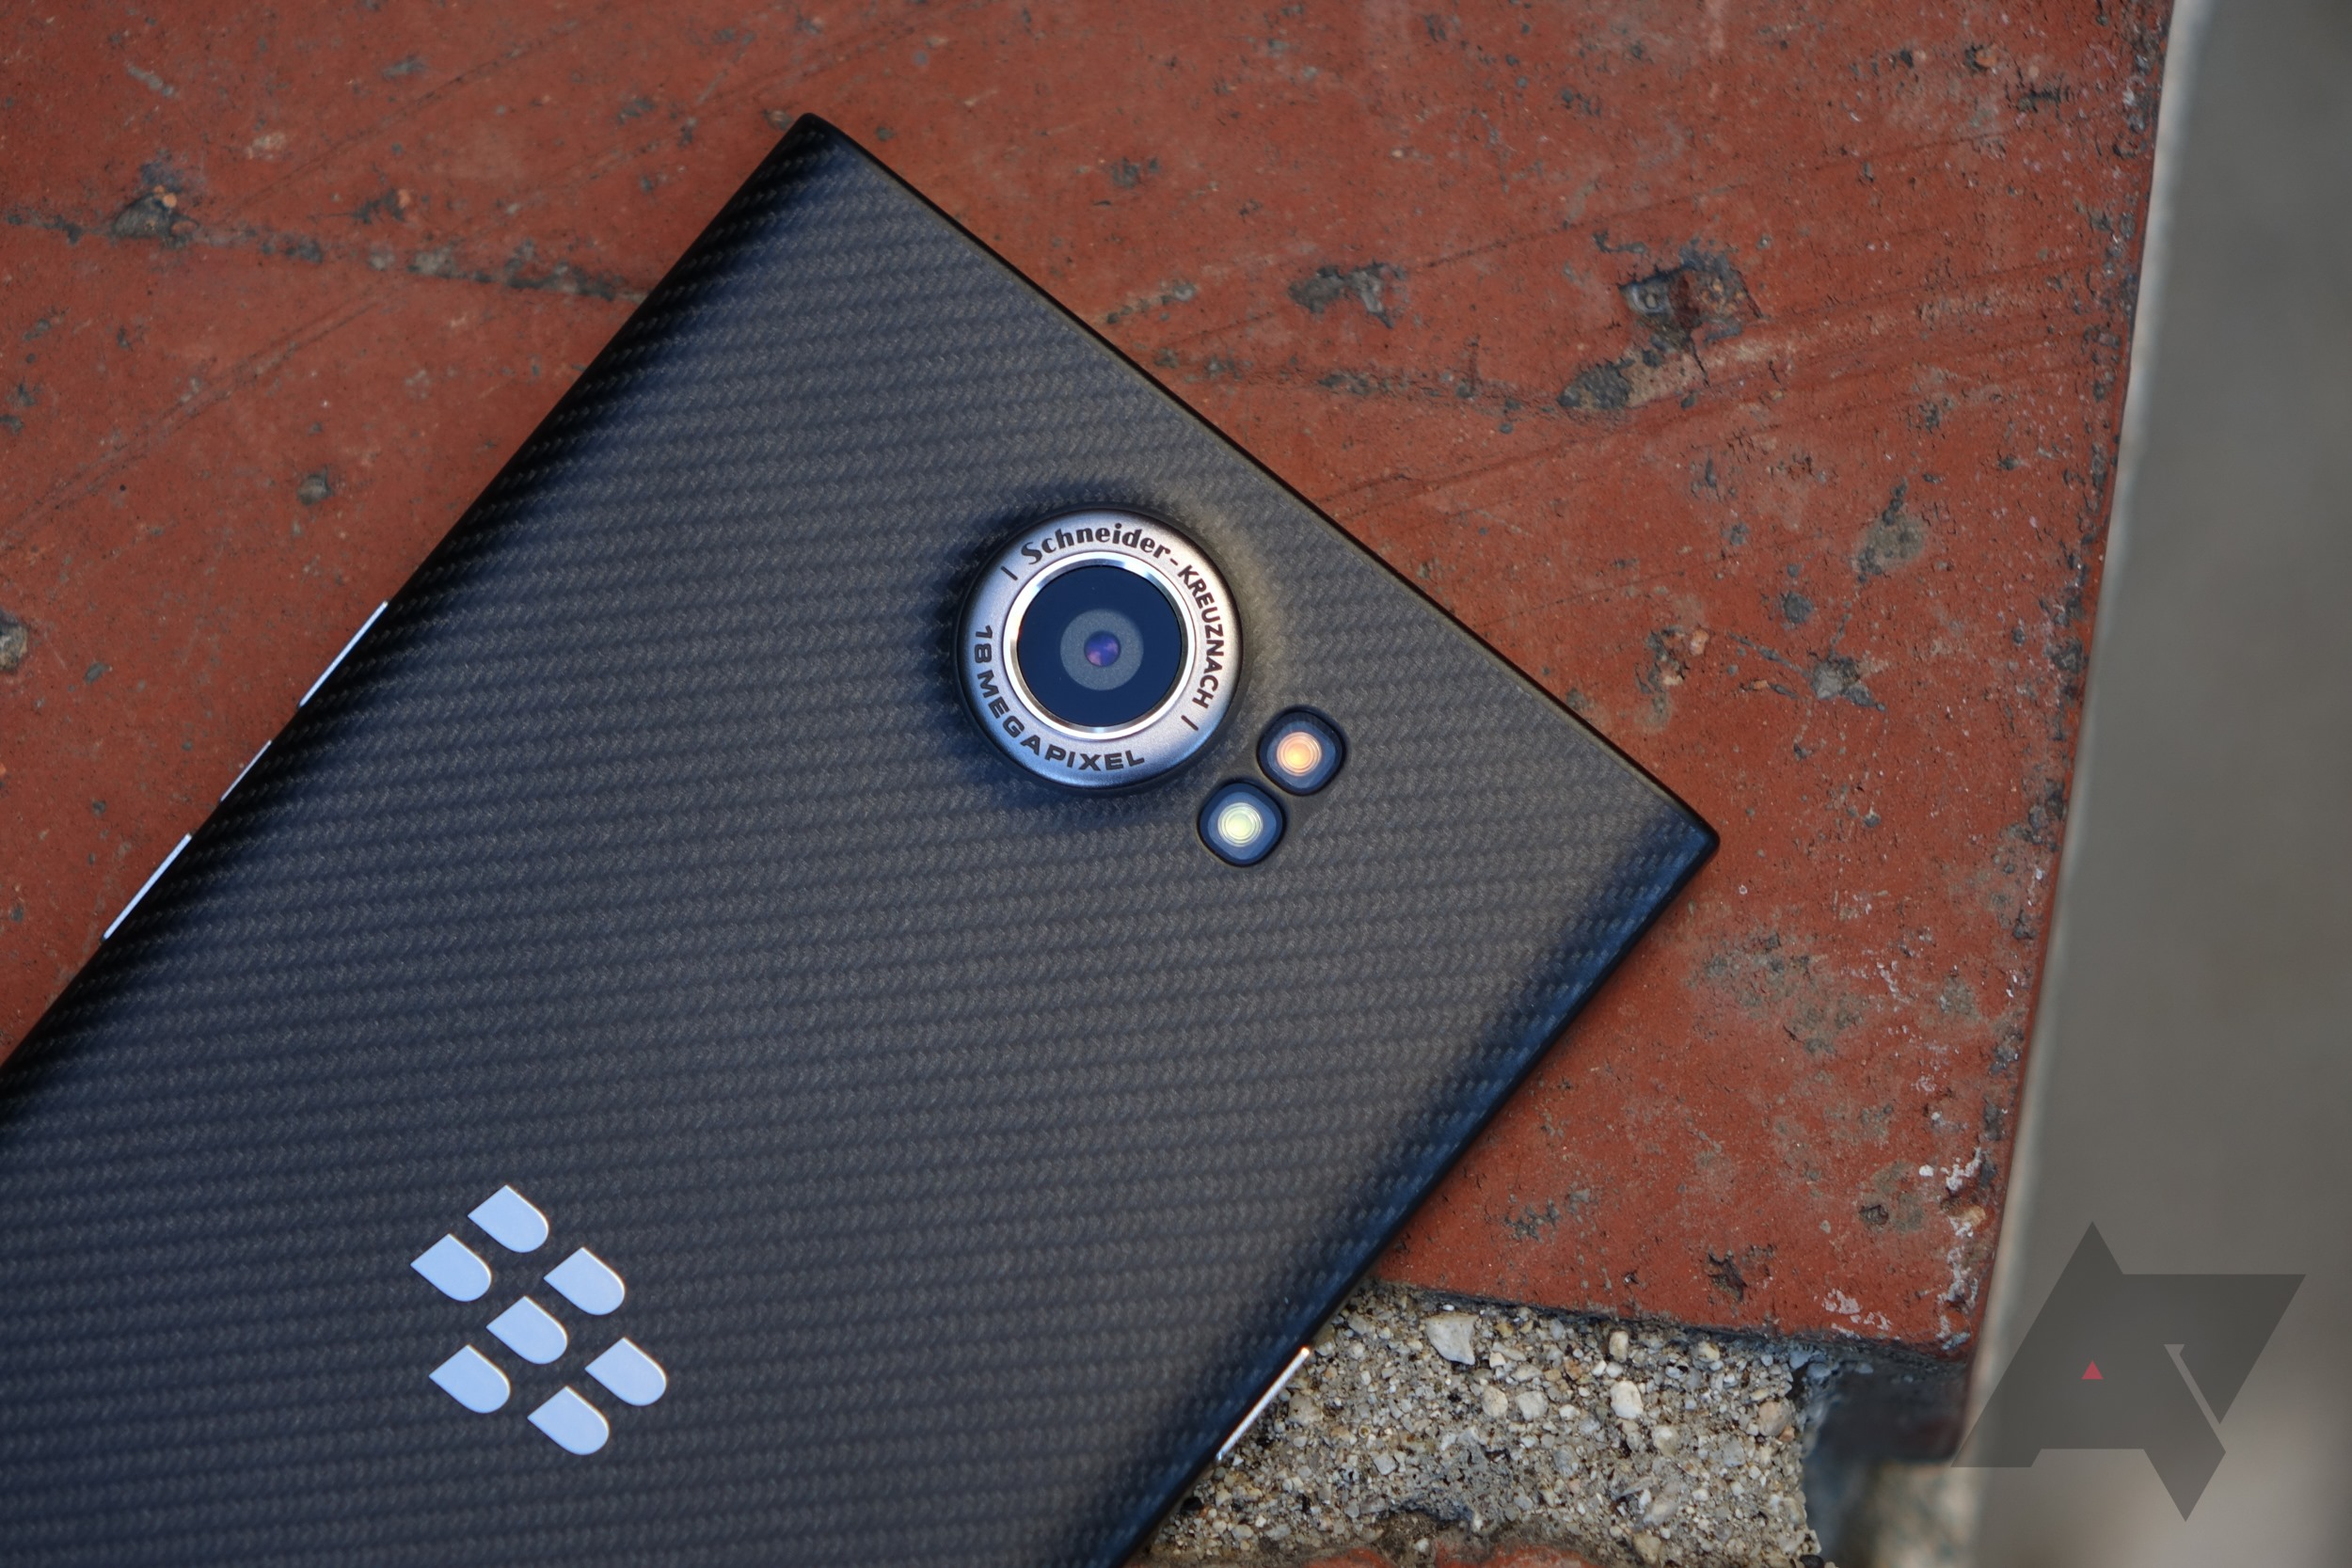 BlackBerry cuts off updates for the PRIV, right after its 24-month